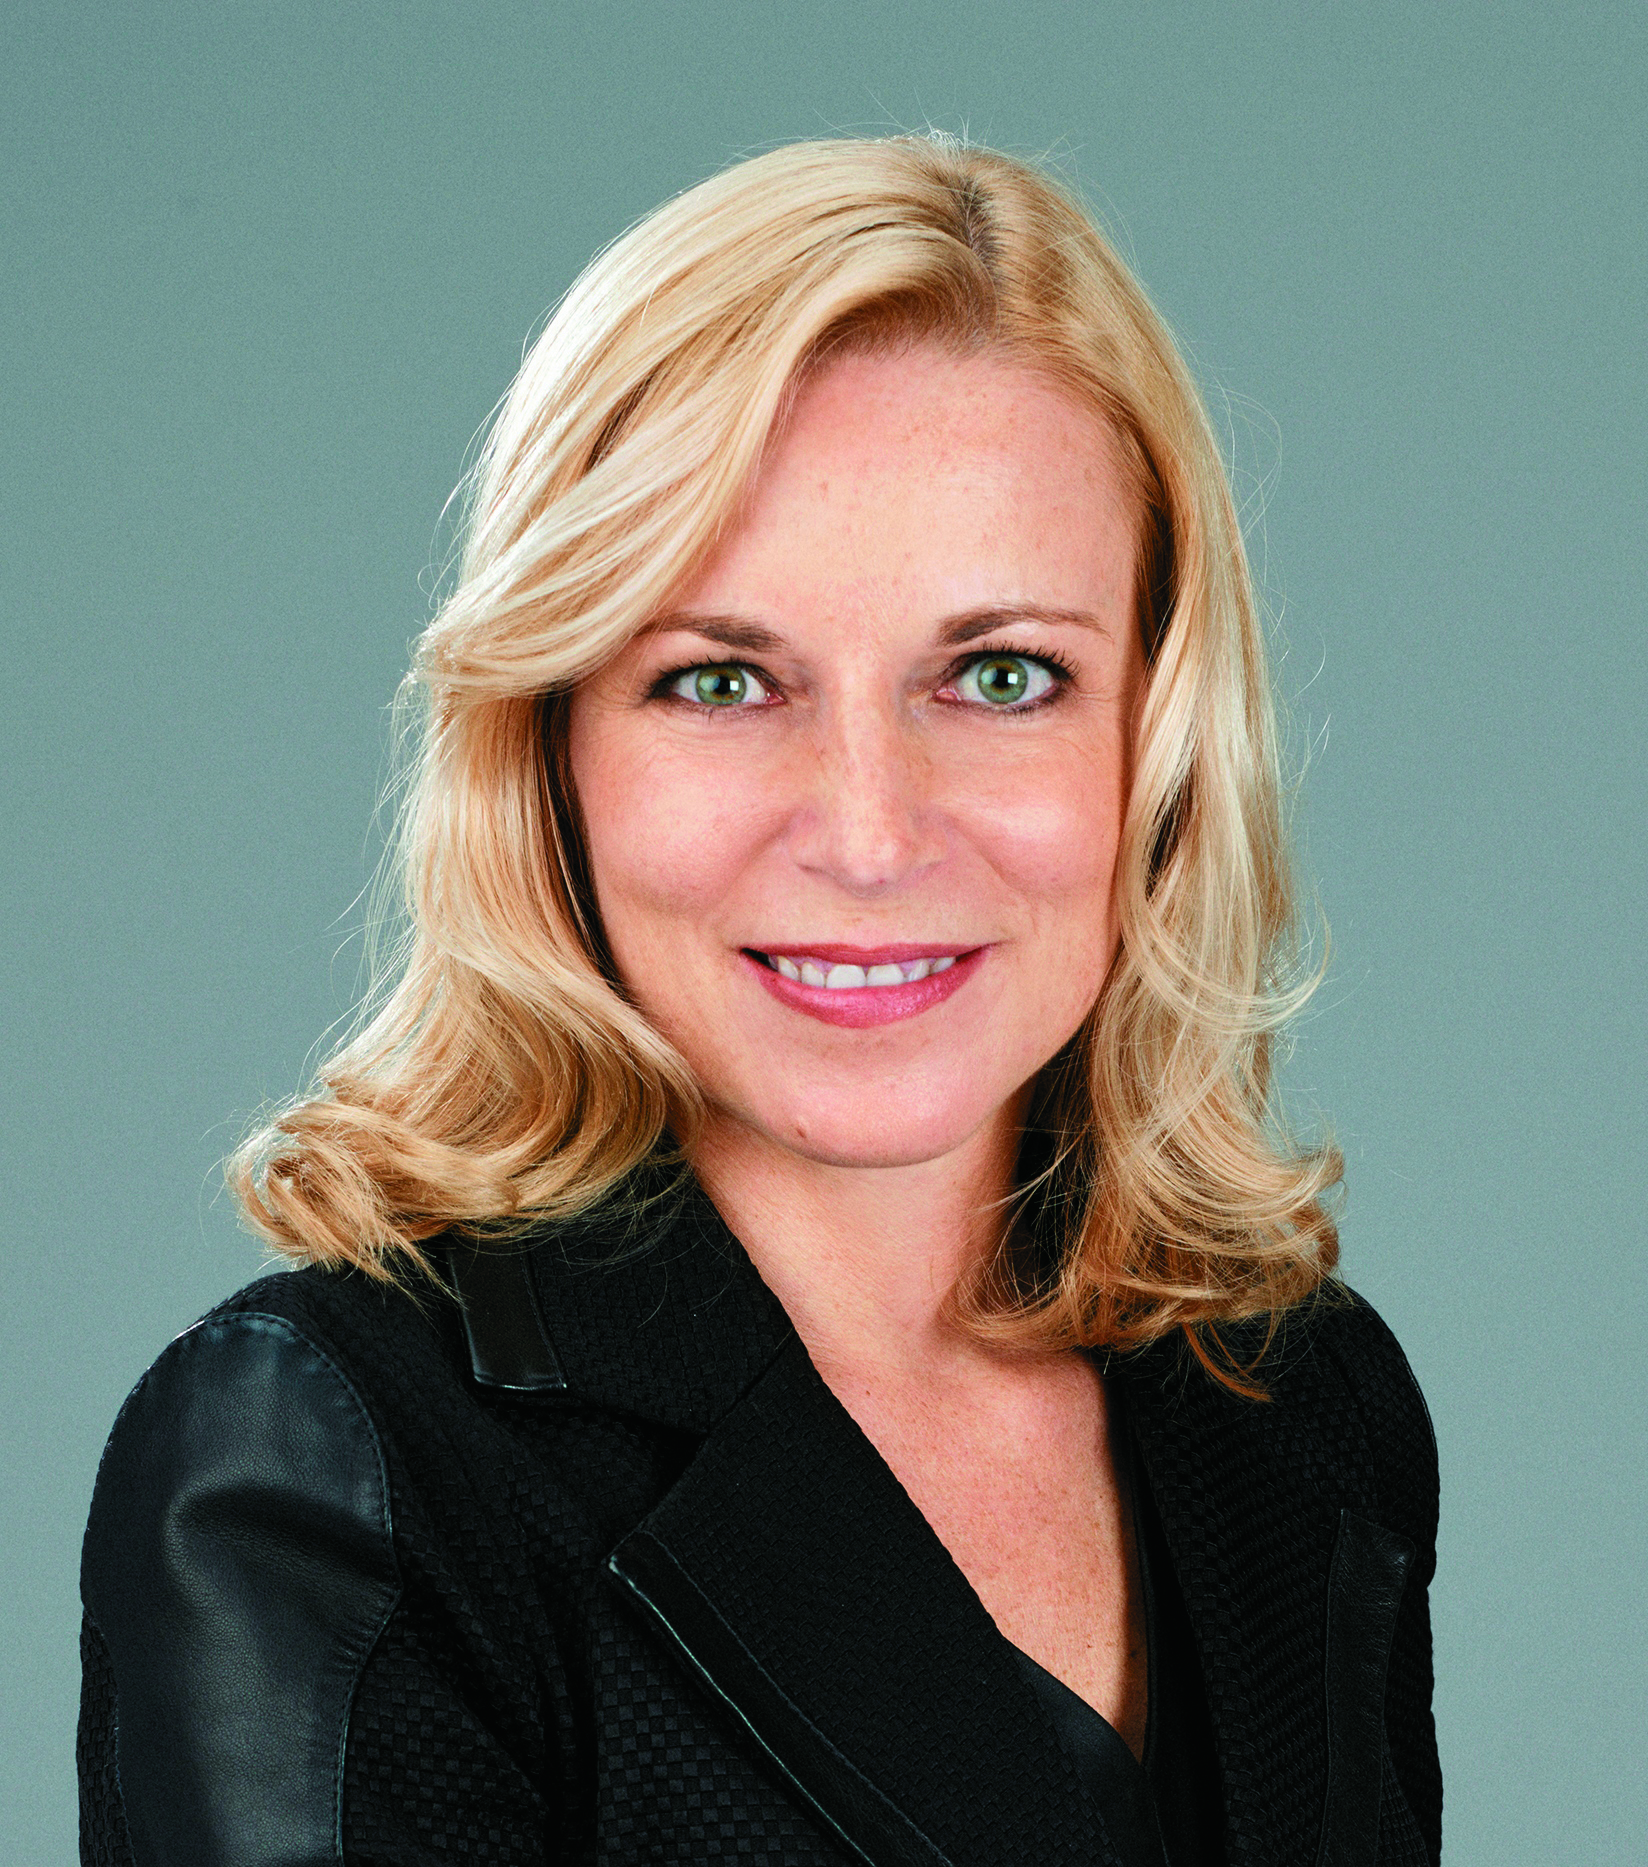 Sylvie Moreau, President, Coty Professional Beauty Division